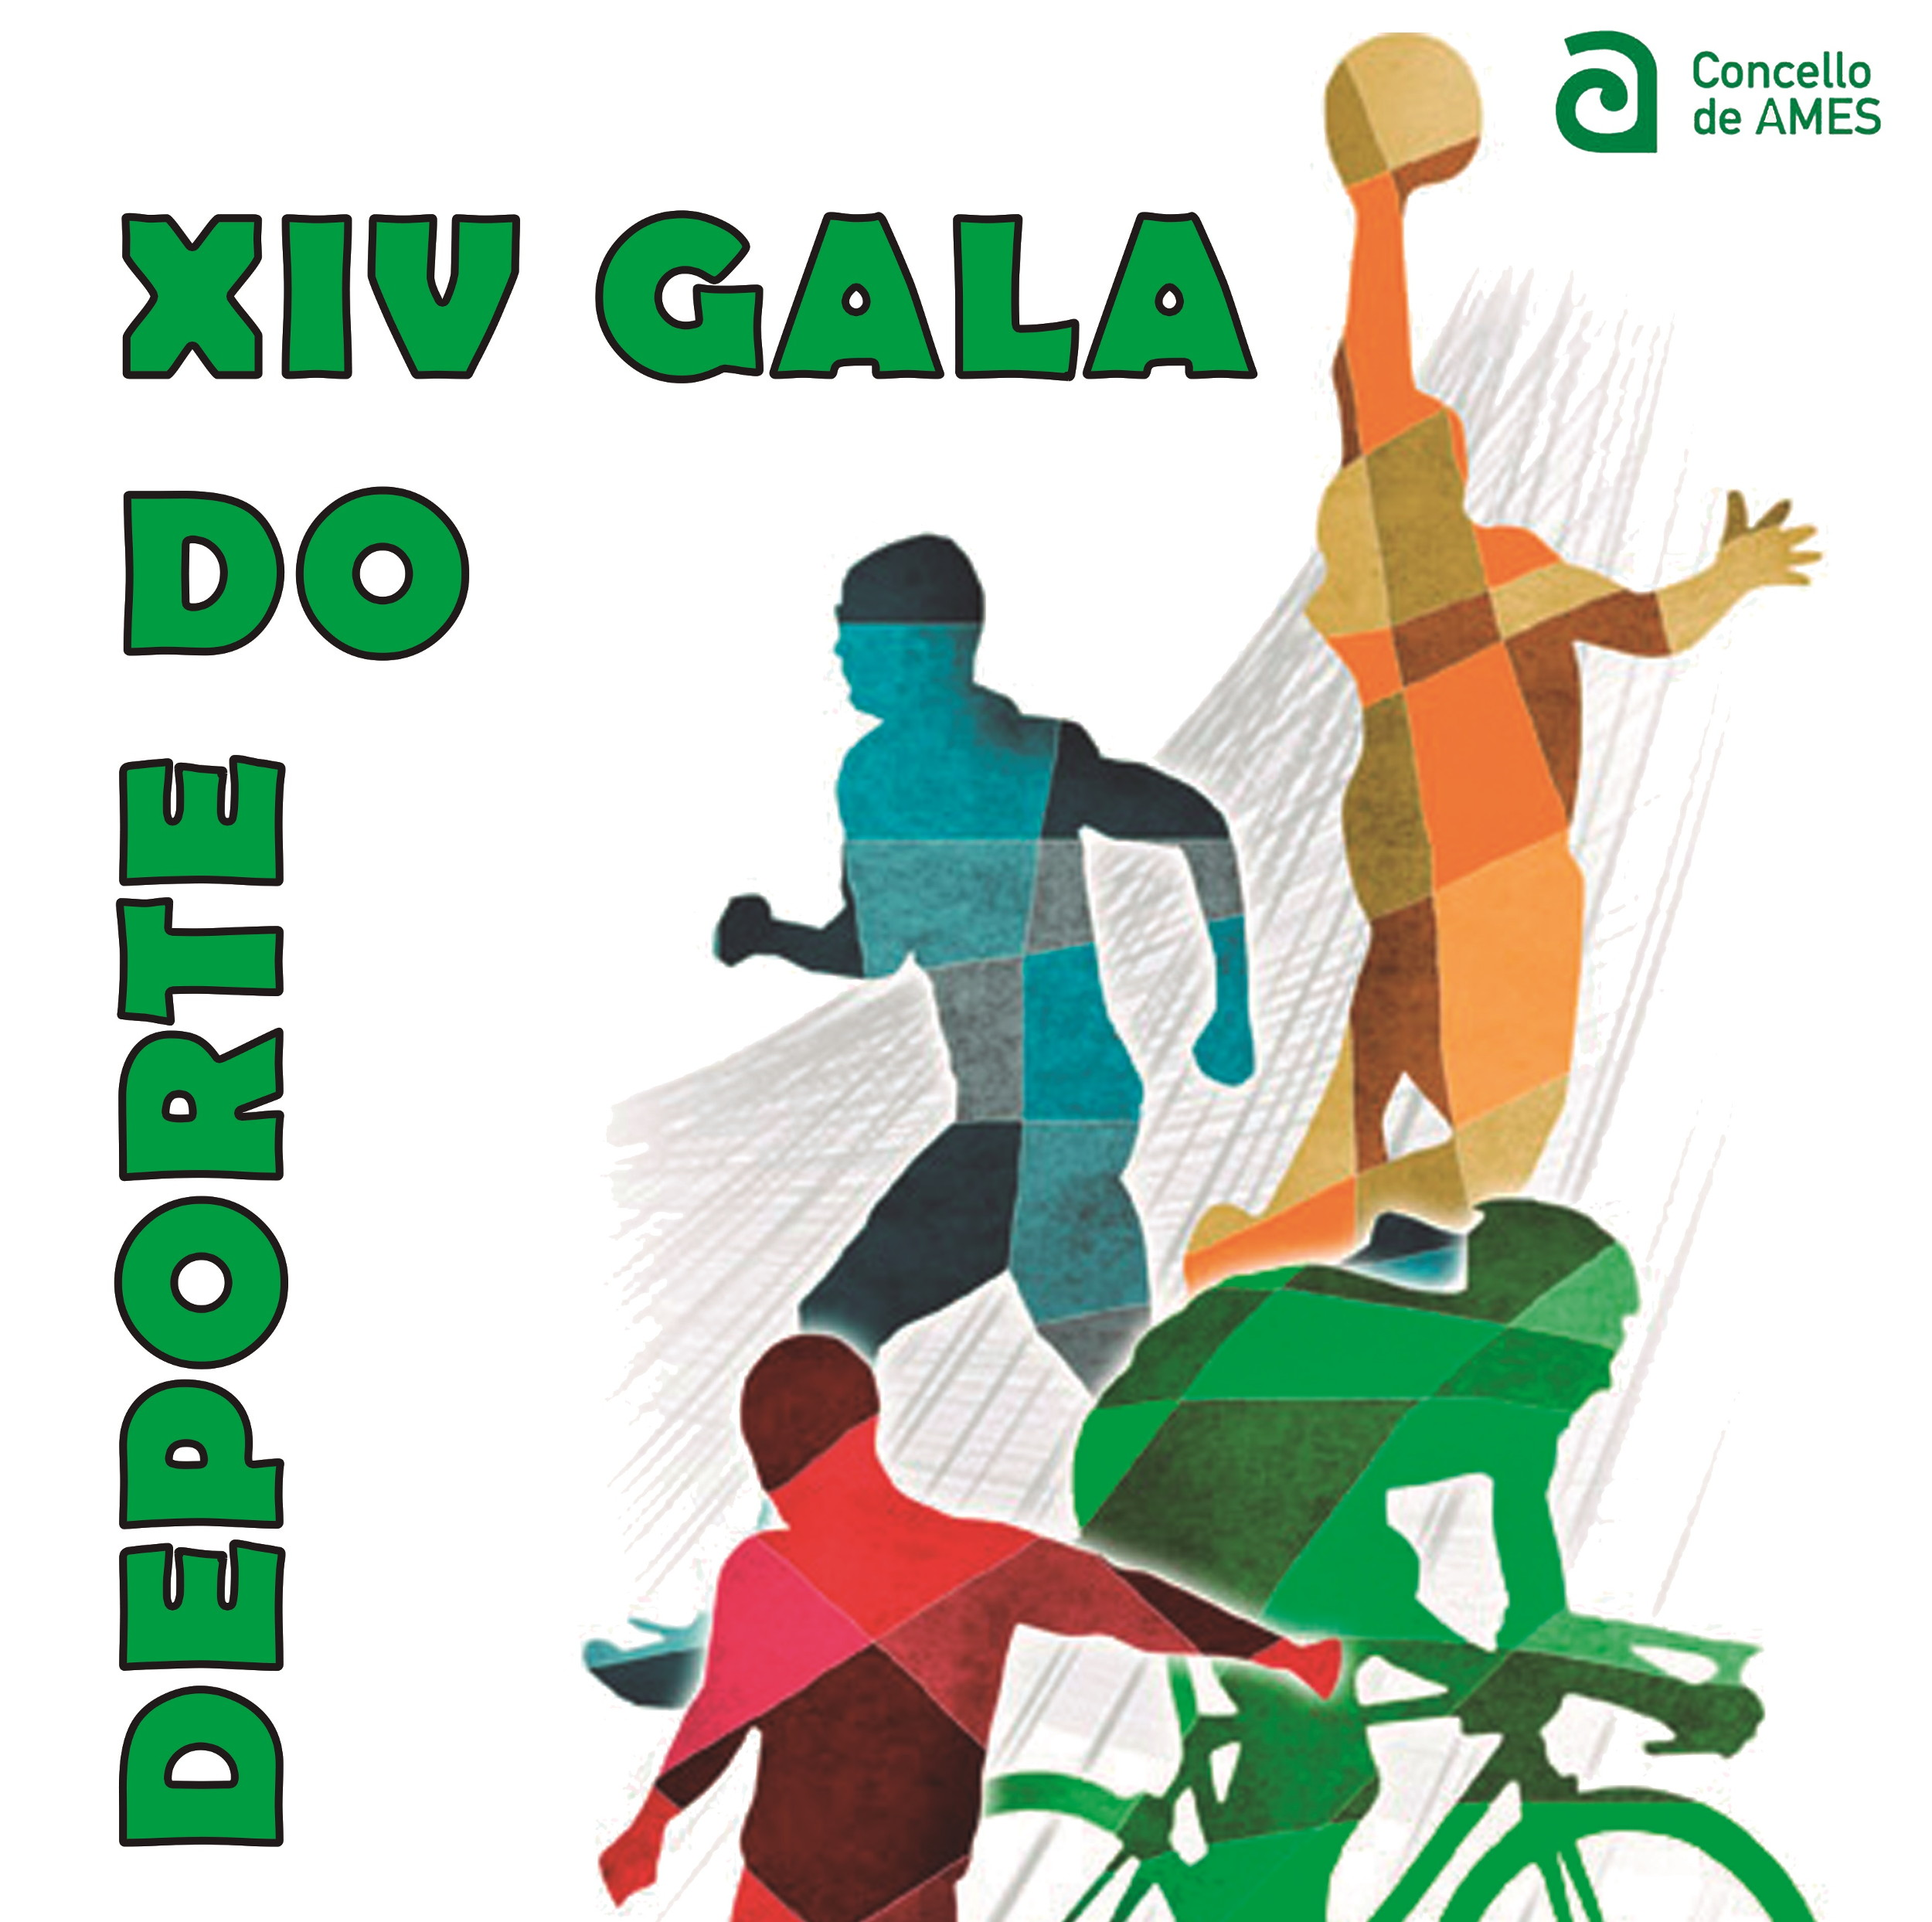 Cartel da XIV Gala do Deporte